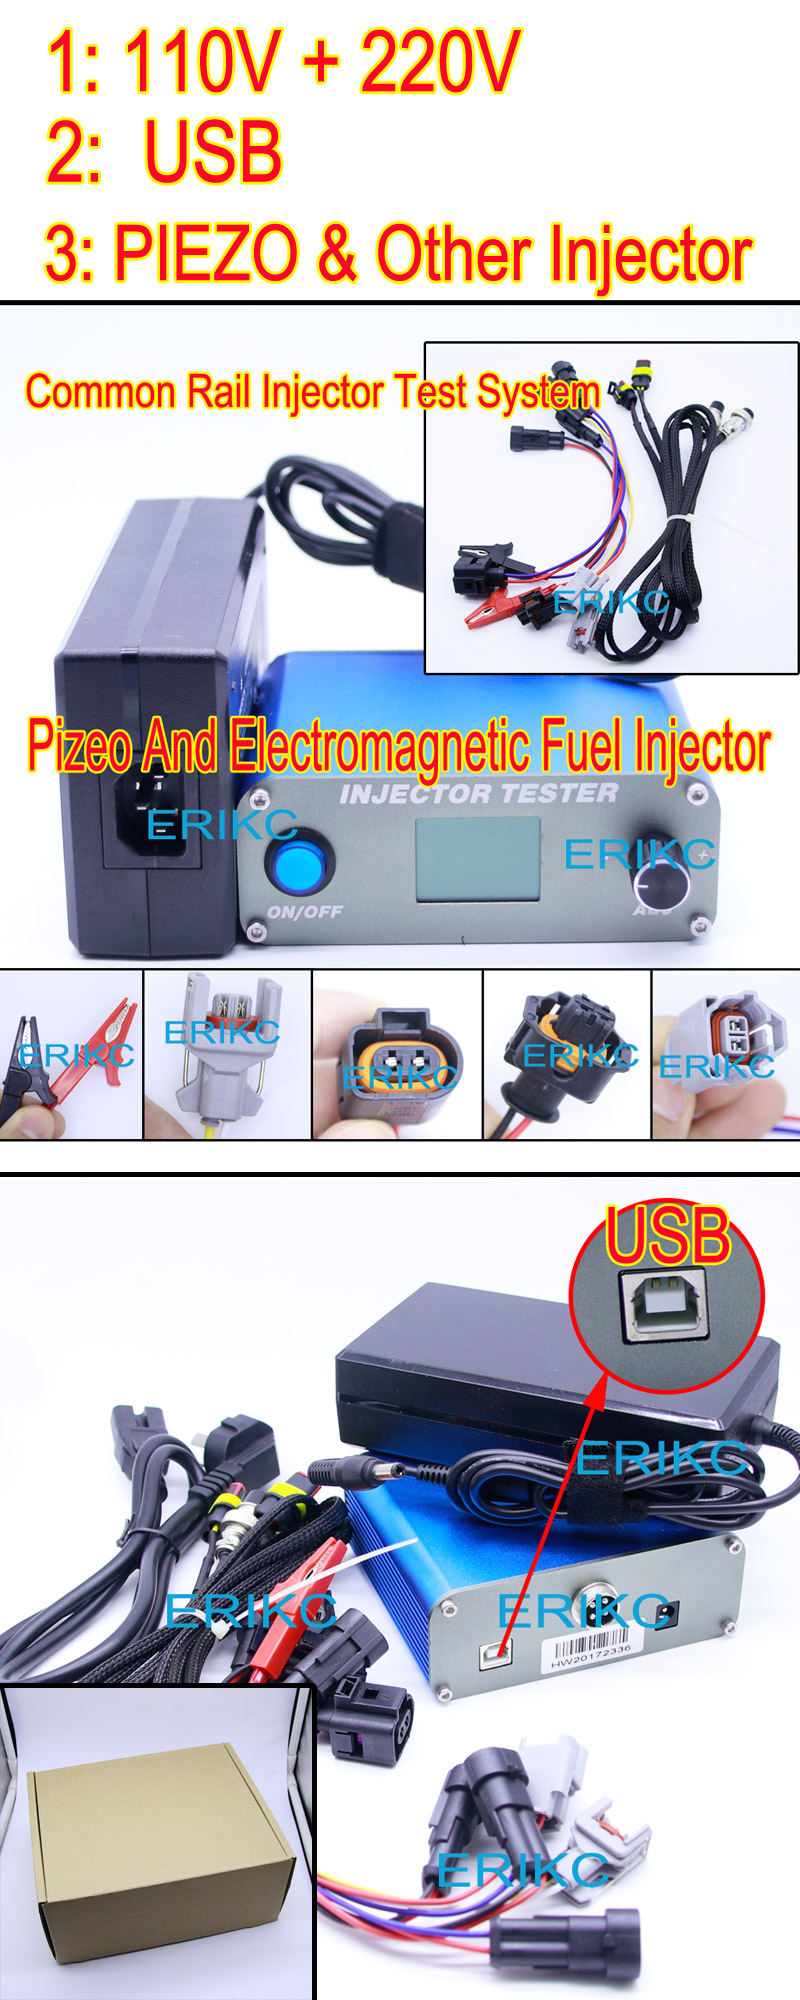 ERIKC diesel injector pump test benches tester for test diesel injector